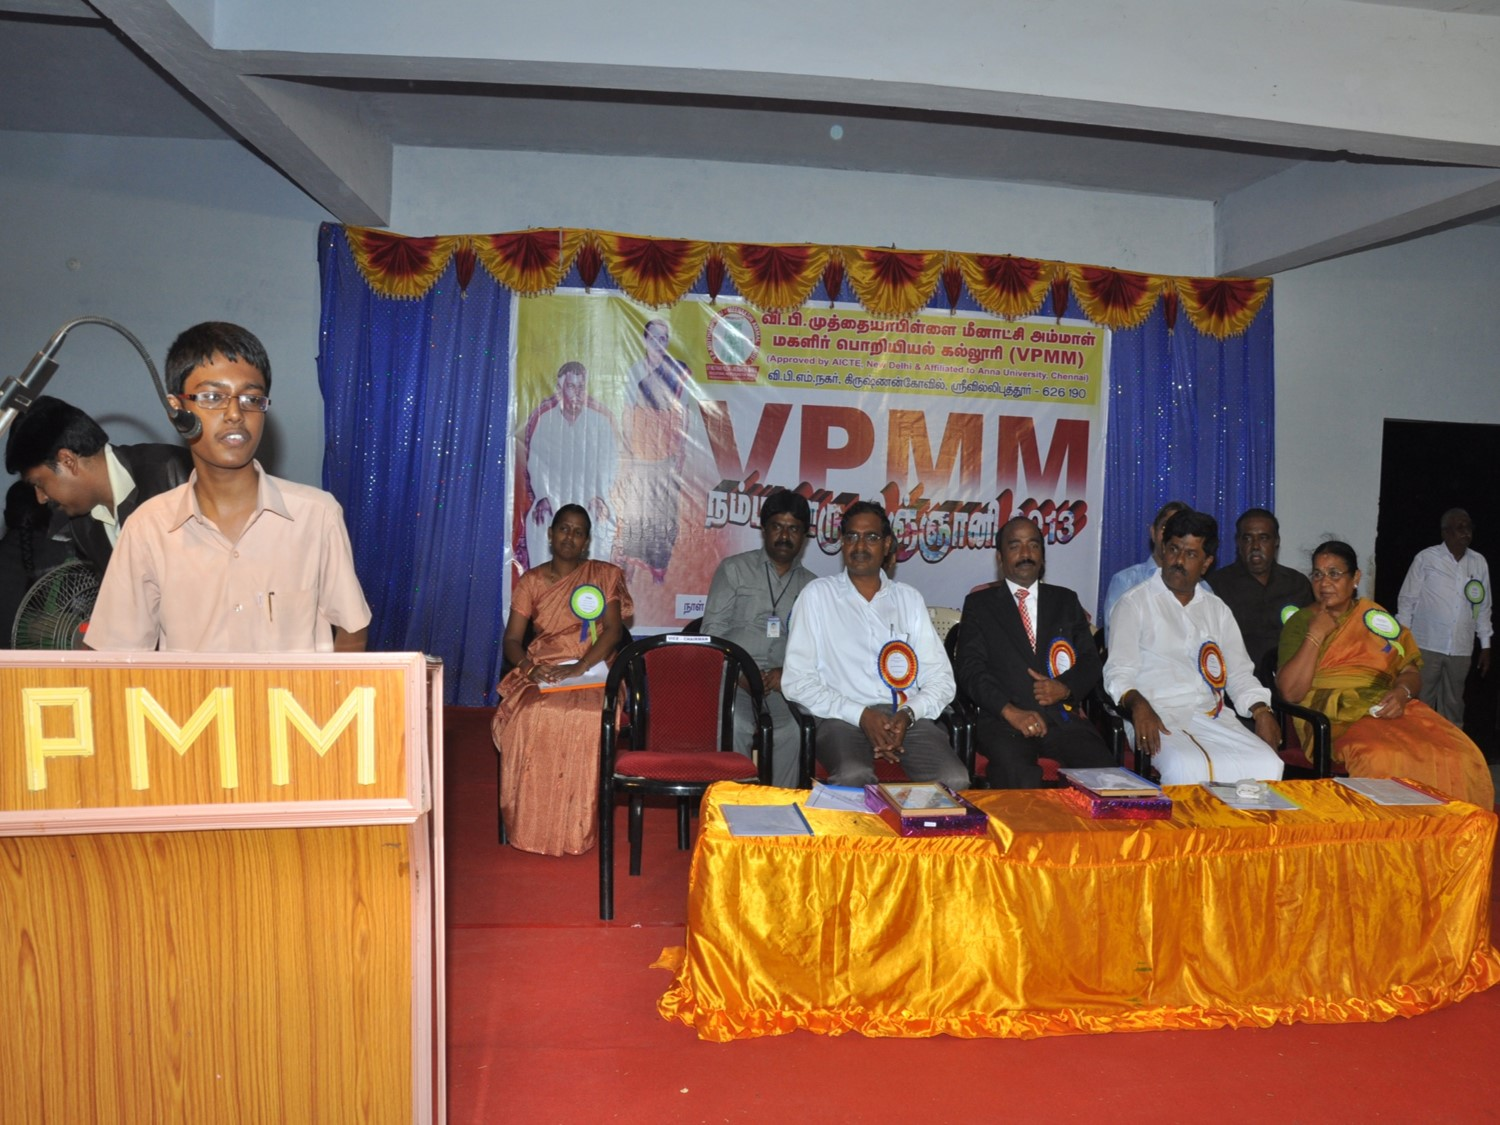 tenith_adithyaa_image_social_lets_innovate_youth_movement_3